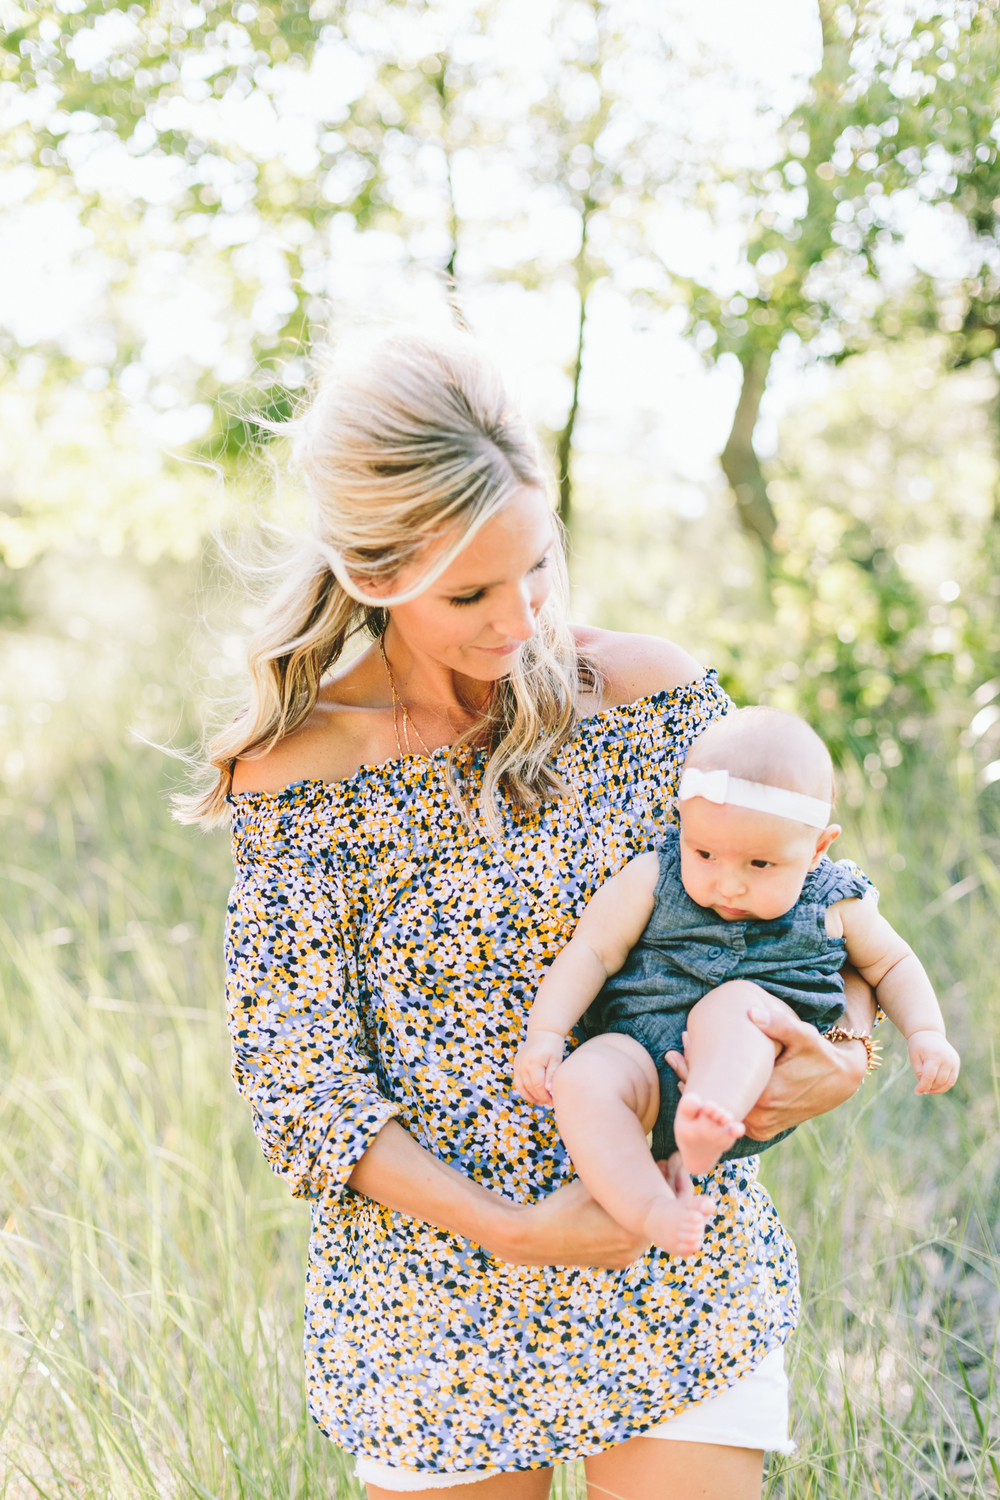 Jillian VanZytveld Photograph - West Michigan Lifestyle Photography - 17.jpg